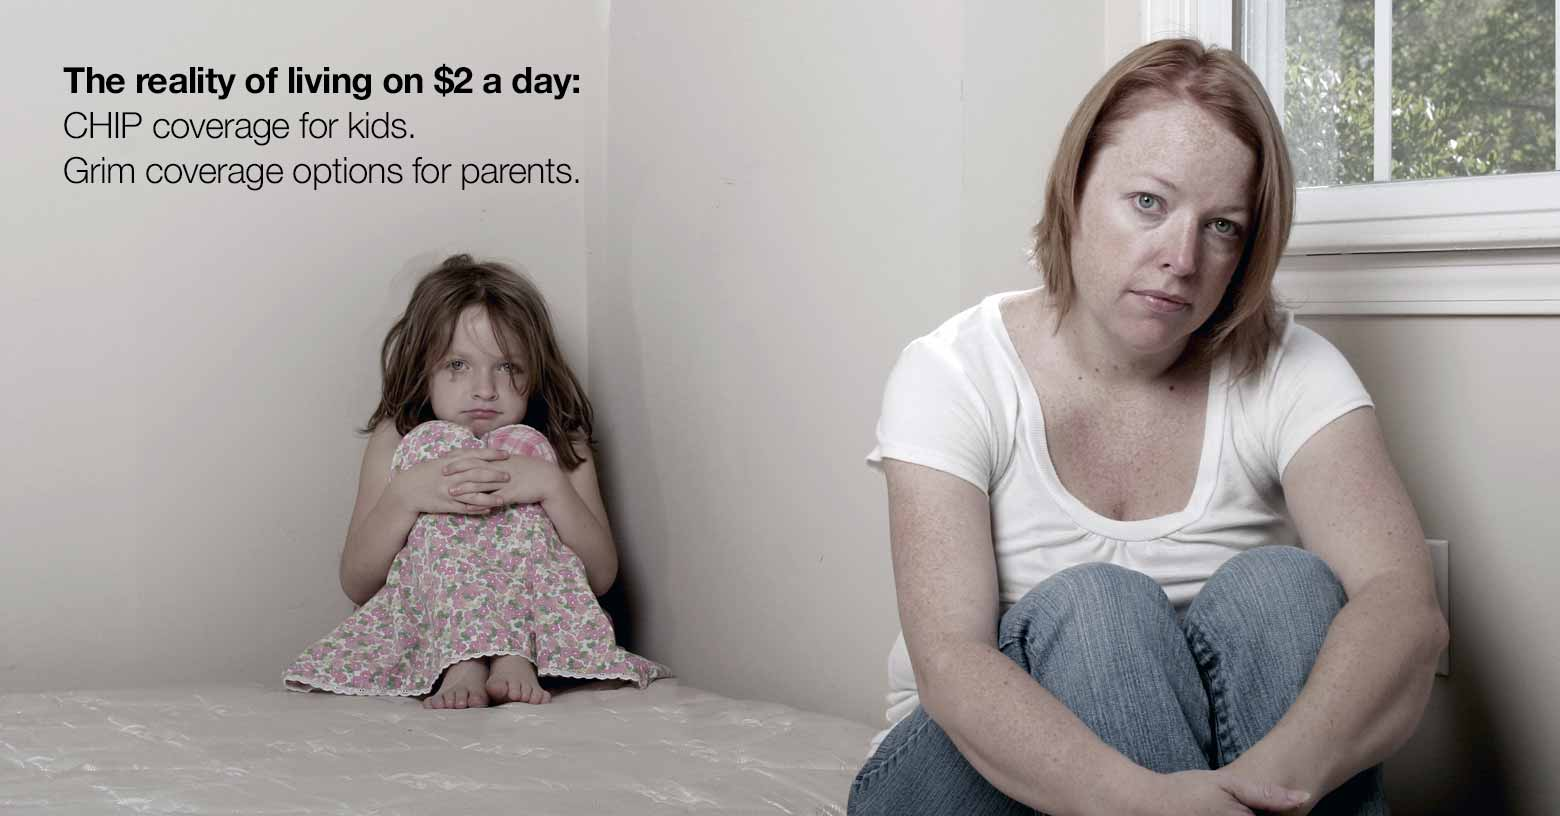 Millions get by on $2 a day. Can Medicaid help? photo